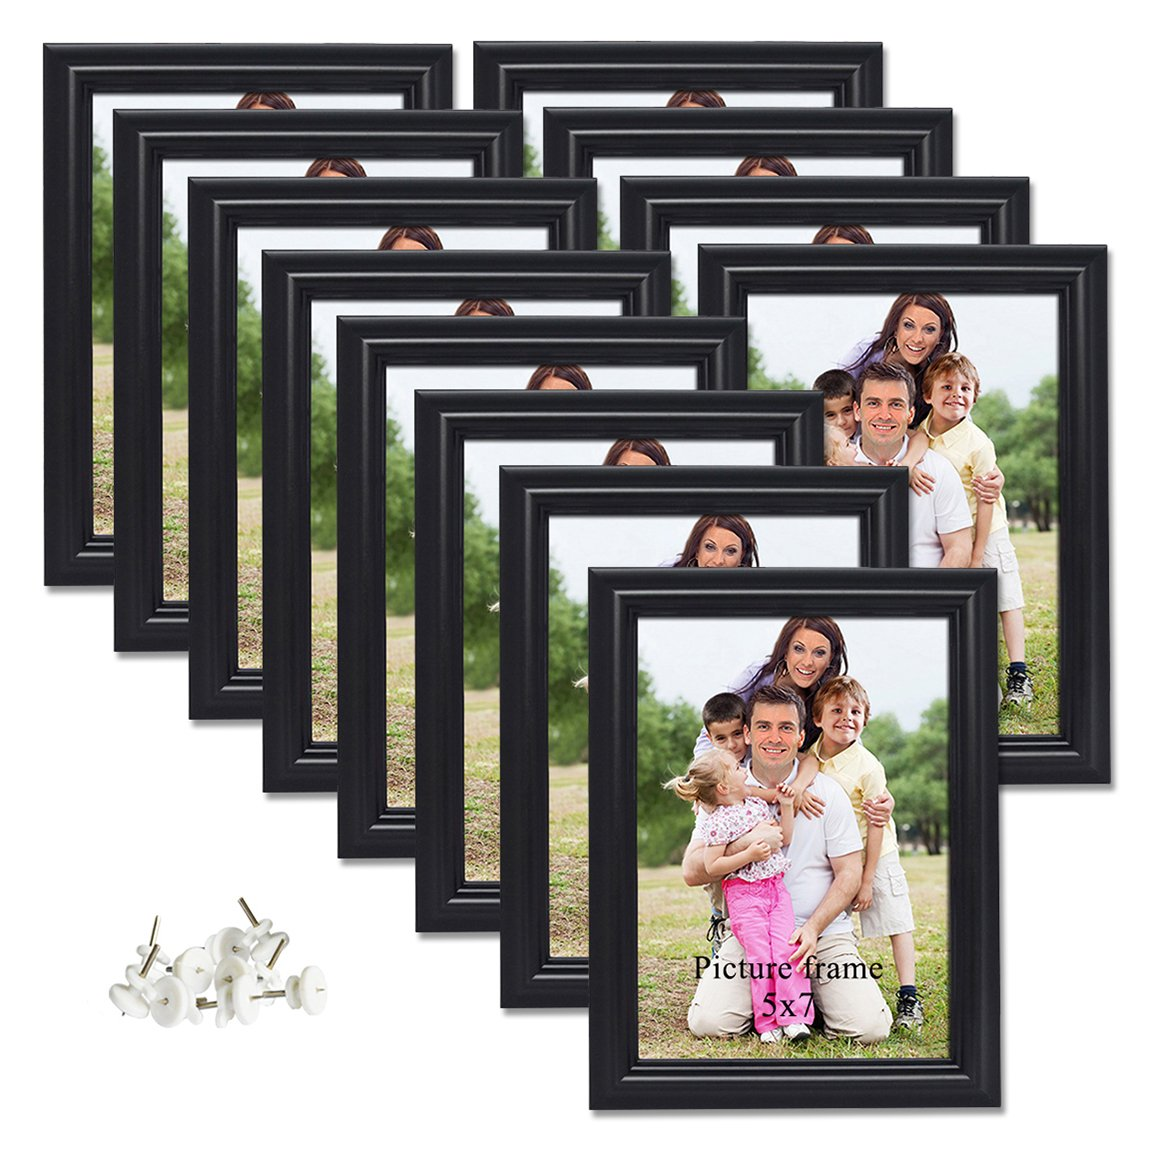 Amazoncom Petaflop 5x7 Picture Frame Set Hold 5 By 7 Inch Black